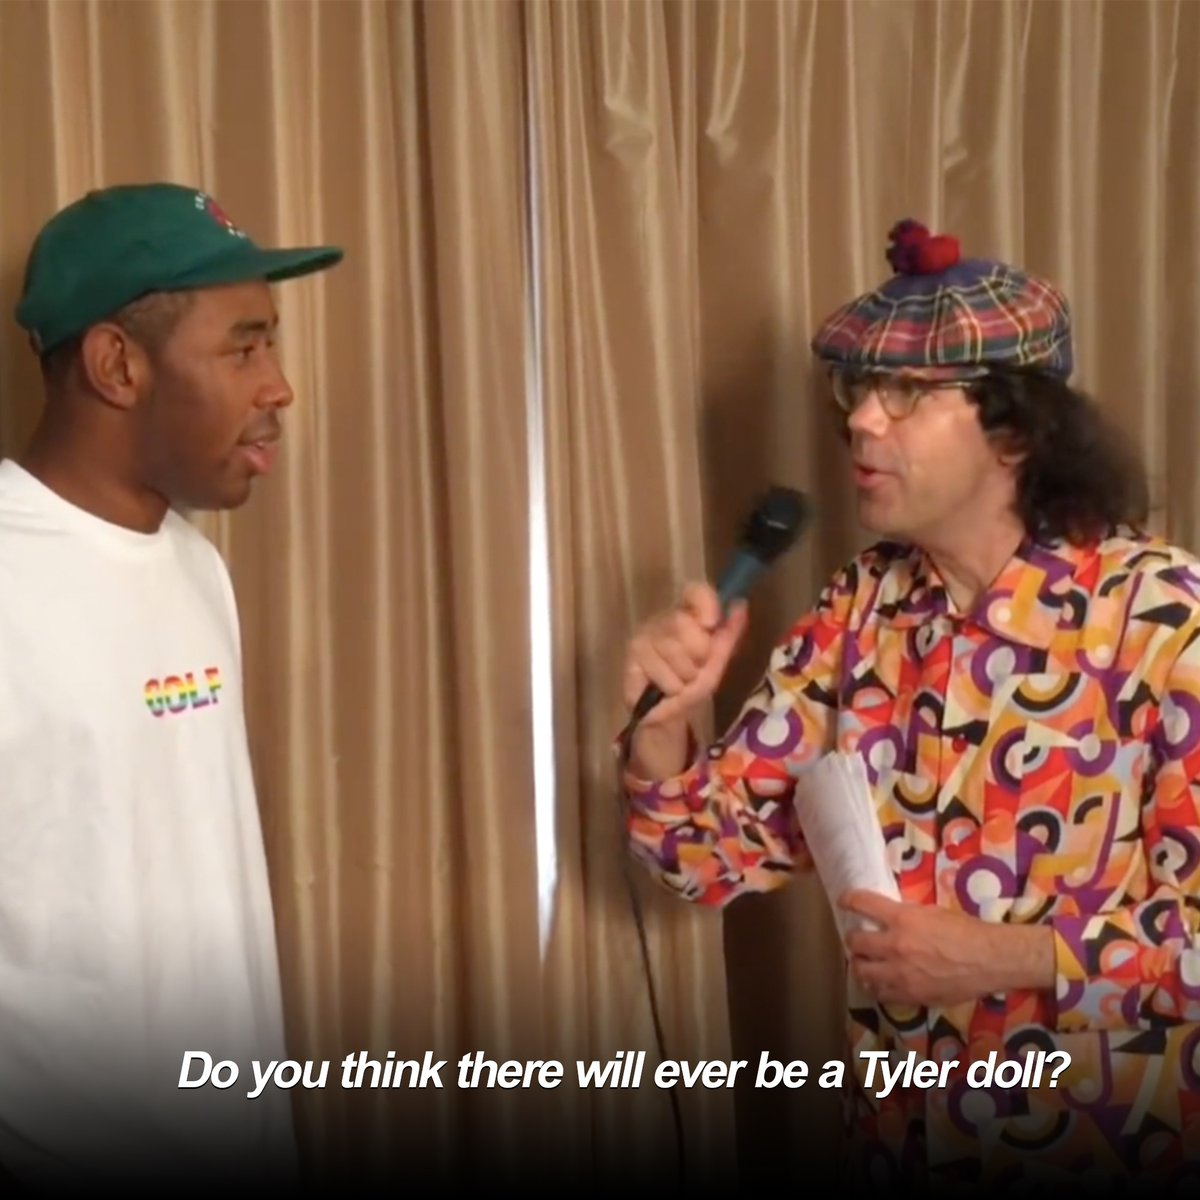 RT @PigsAndPlans: Why there might never be a Tyler, the Creator doll. https://t.co/6SncNsYiky